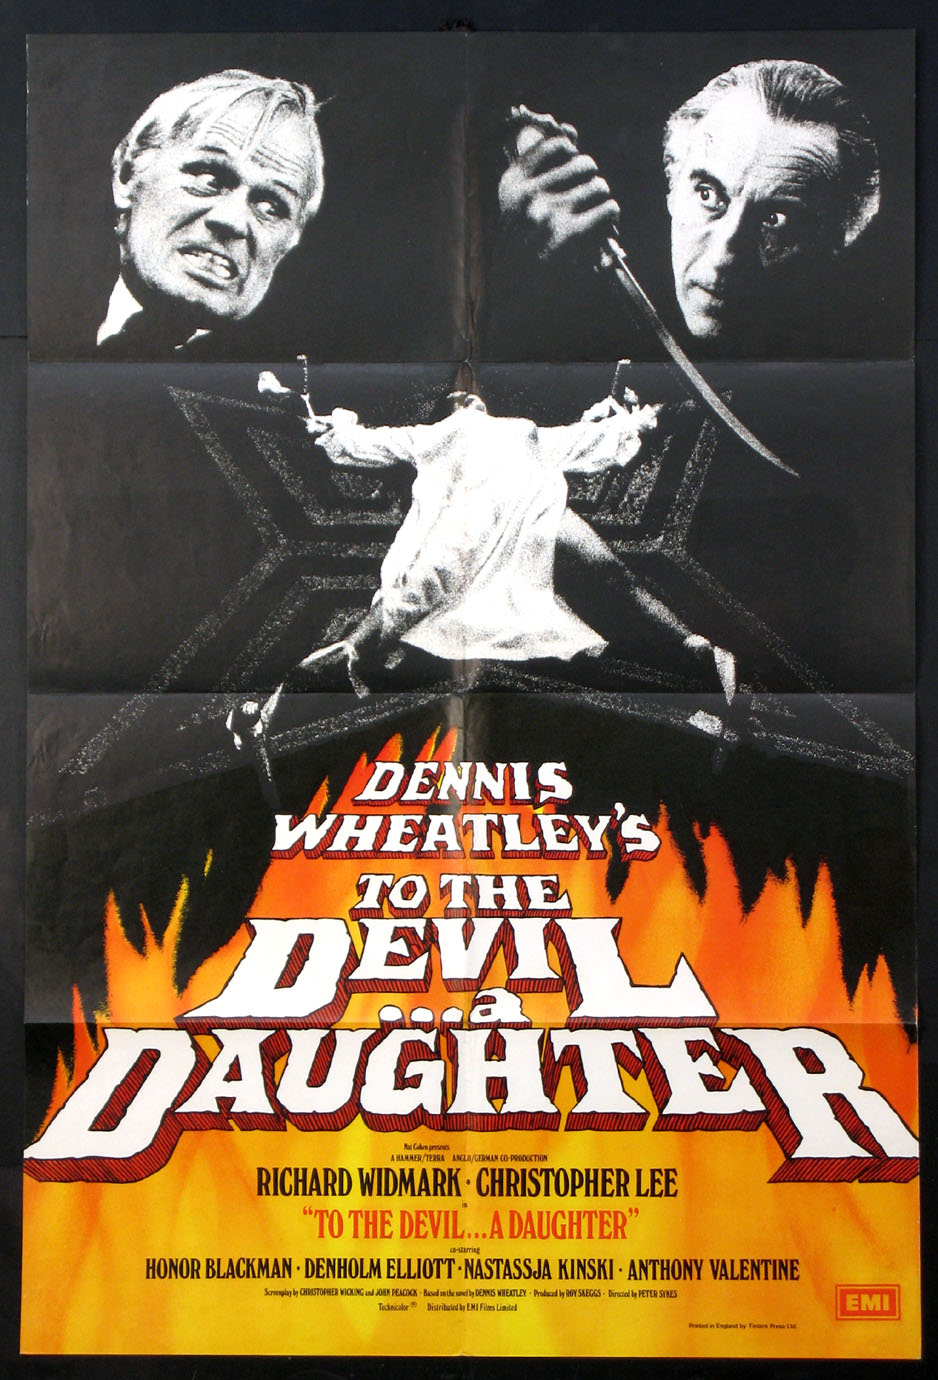 TO THE DEVIL A DAUGHTER @ FilmPosters.com